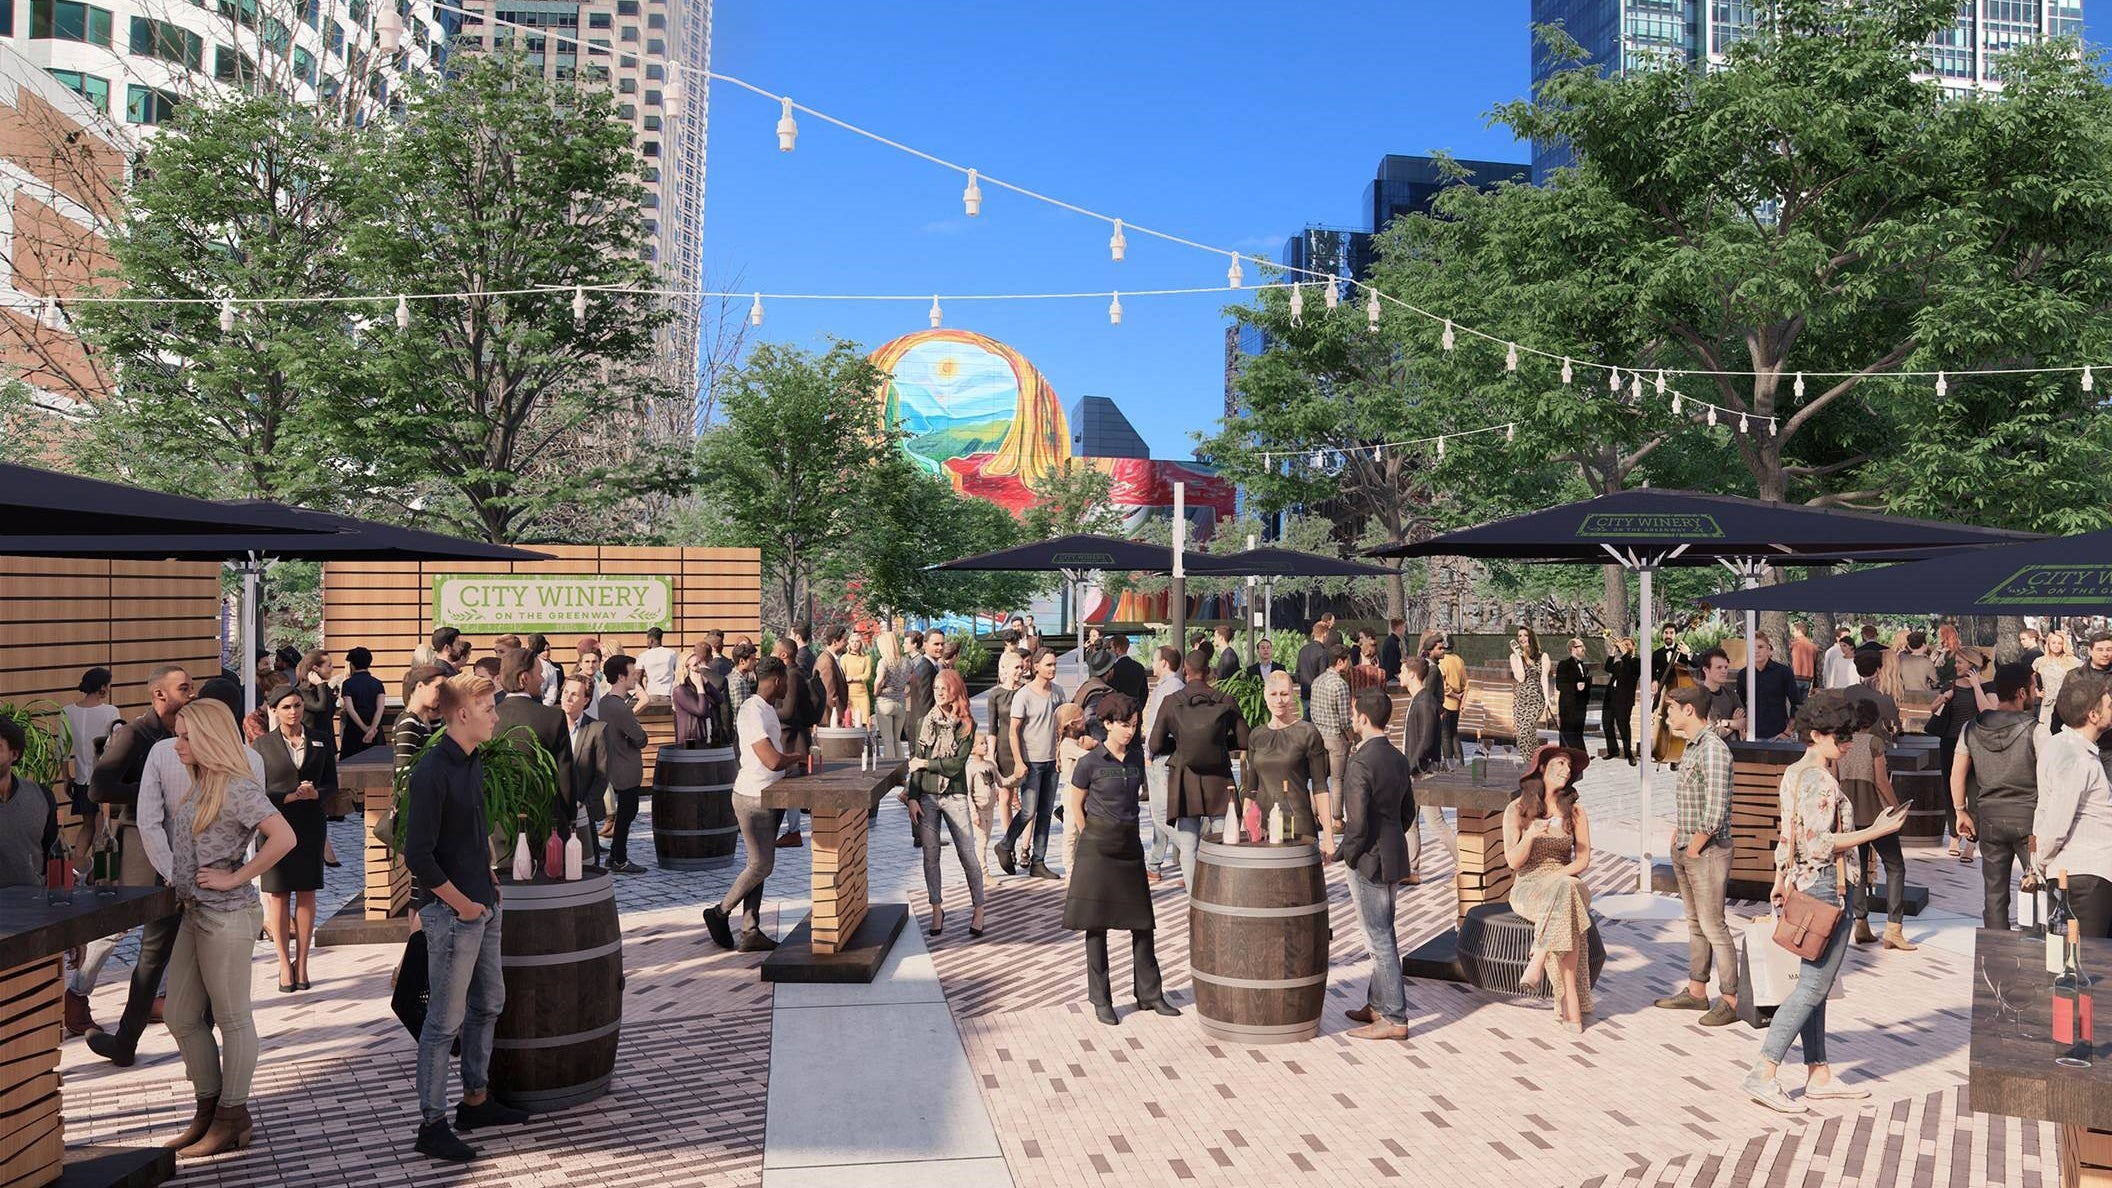 A rendering of City Winery on the Greenway